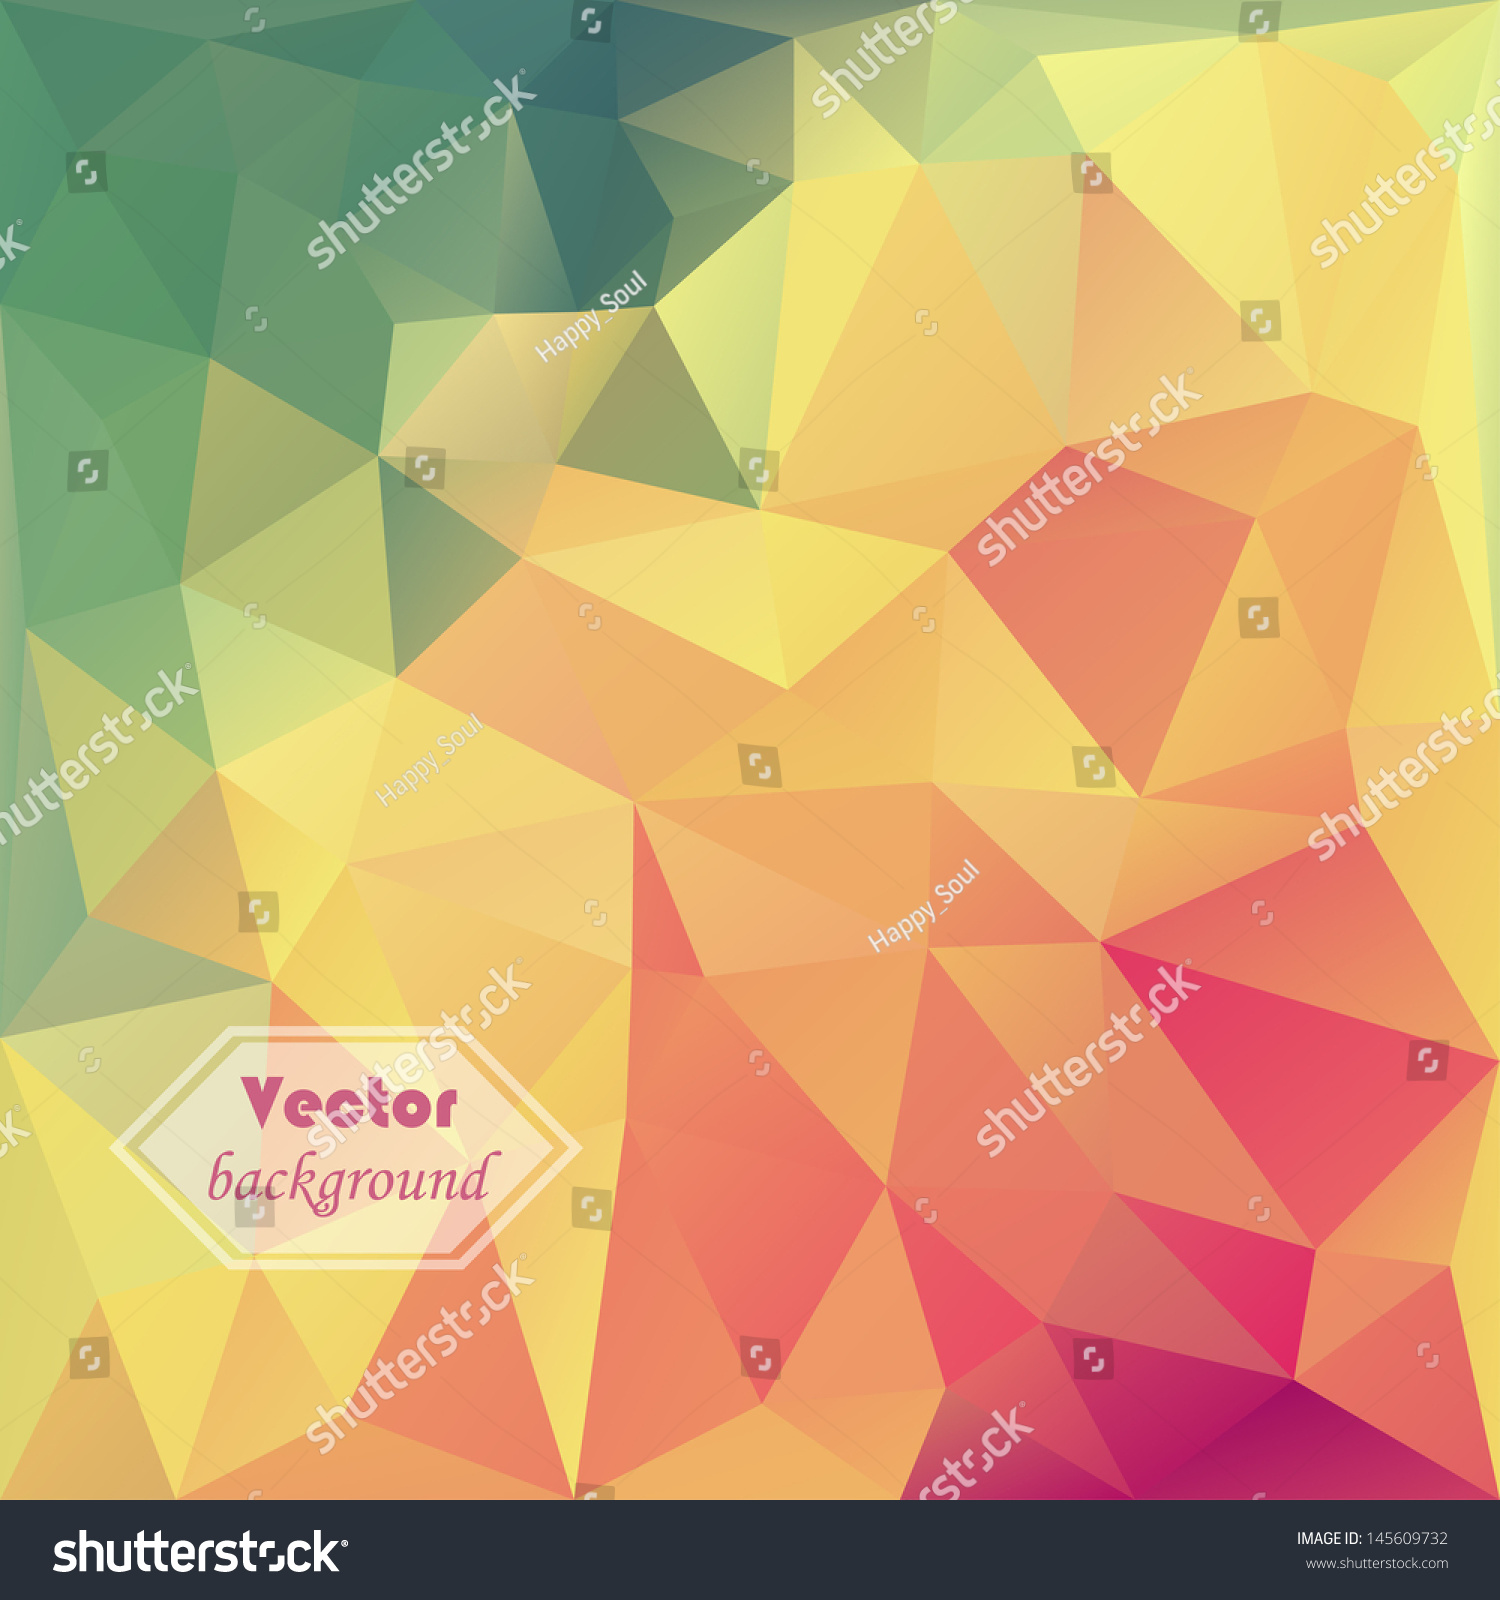 Geometric triangle tiled mosaic pattern background